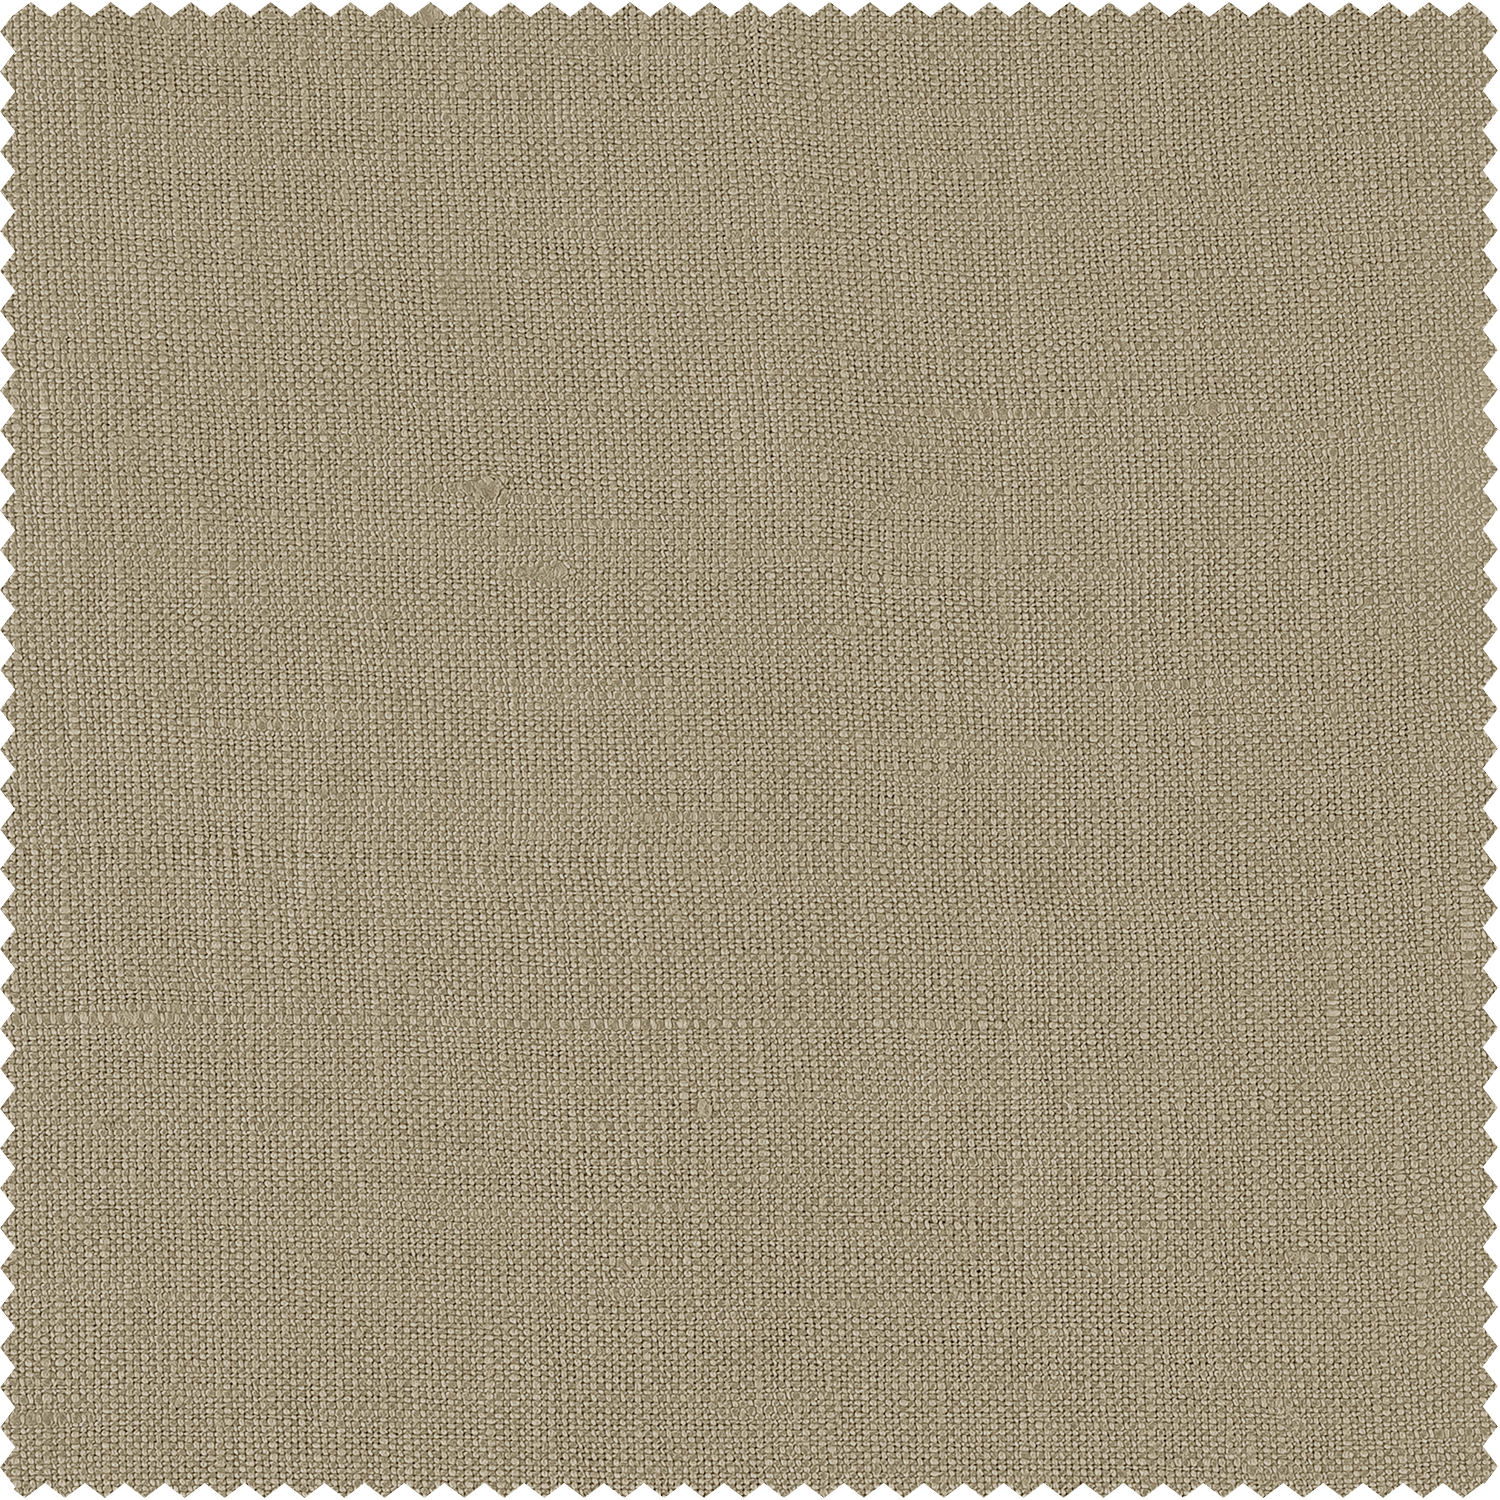 Walnut Beige French Linen Swatch